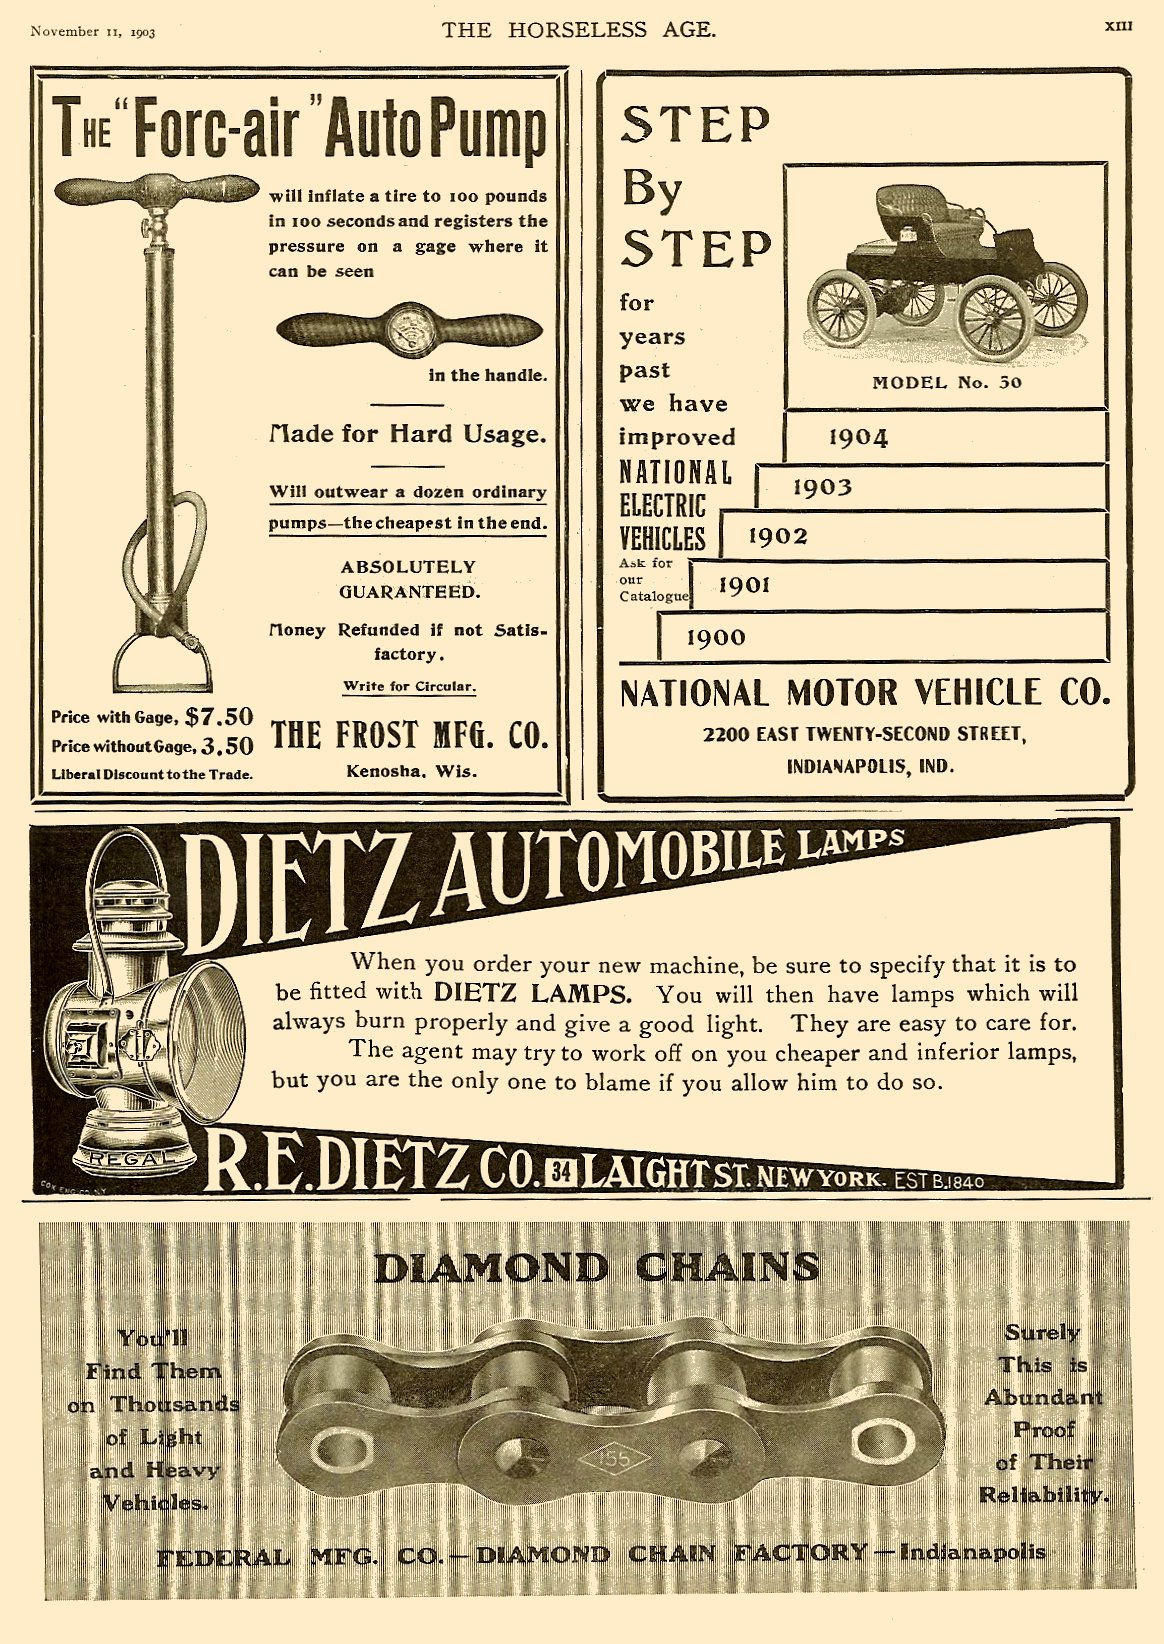 1903 11 11 1904 National Electric Model No. 50 The Horseless Age magazine Nov 11, 1903 Vol. 12 No. 20 9.25″x12″ page 13